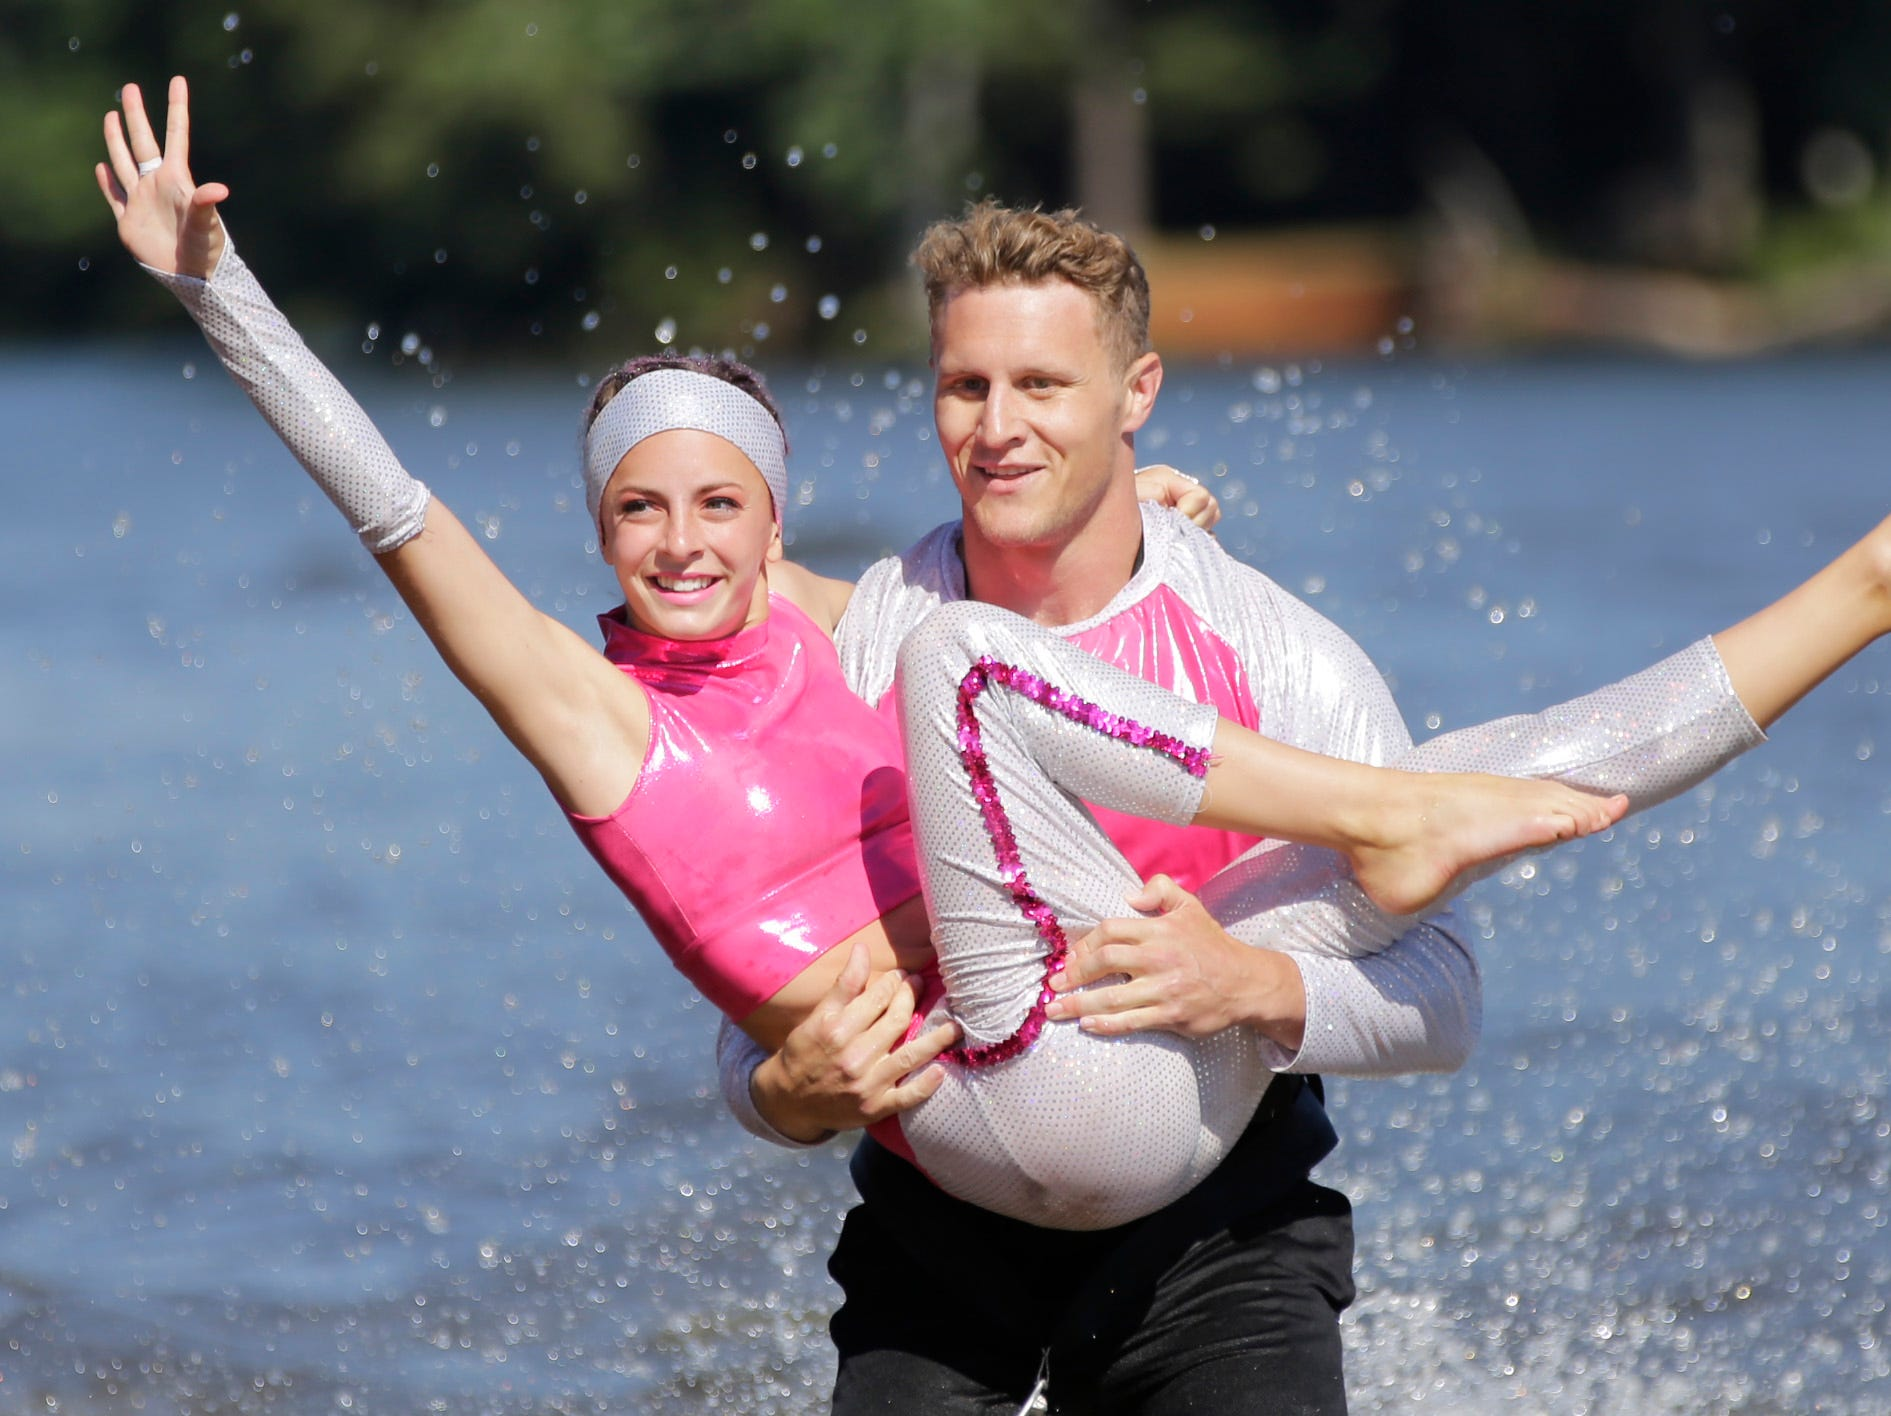 Cody Siolka and Ava Pleshek compete in the doubles category during the Wisconsin State Water Ski Show Championships on Lake Wazeecha in Kellner Thursday, July 19, 2018.